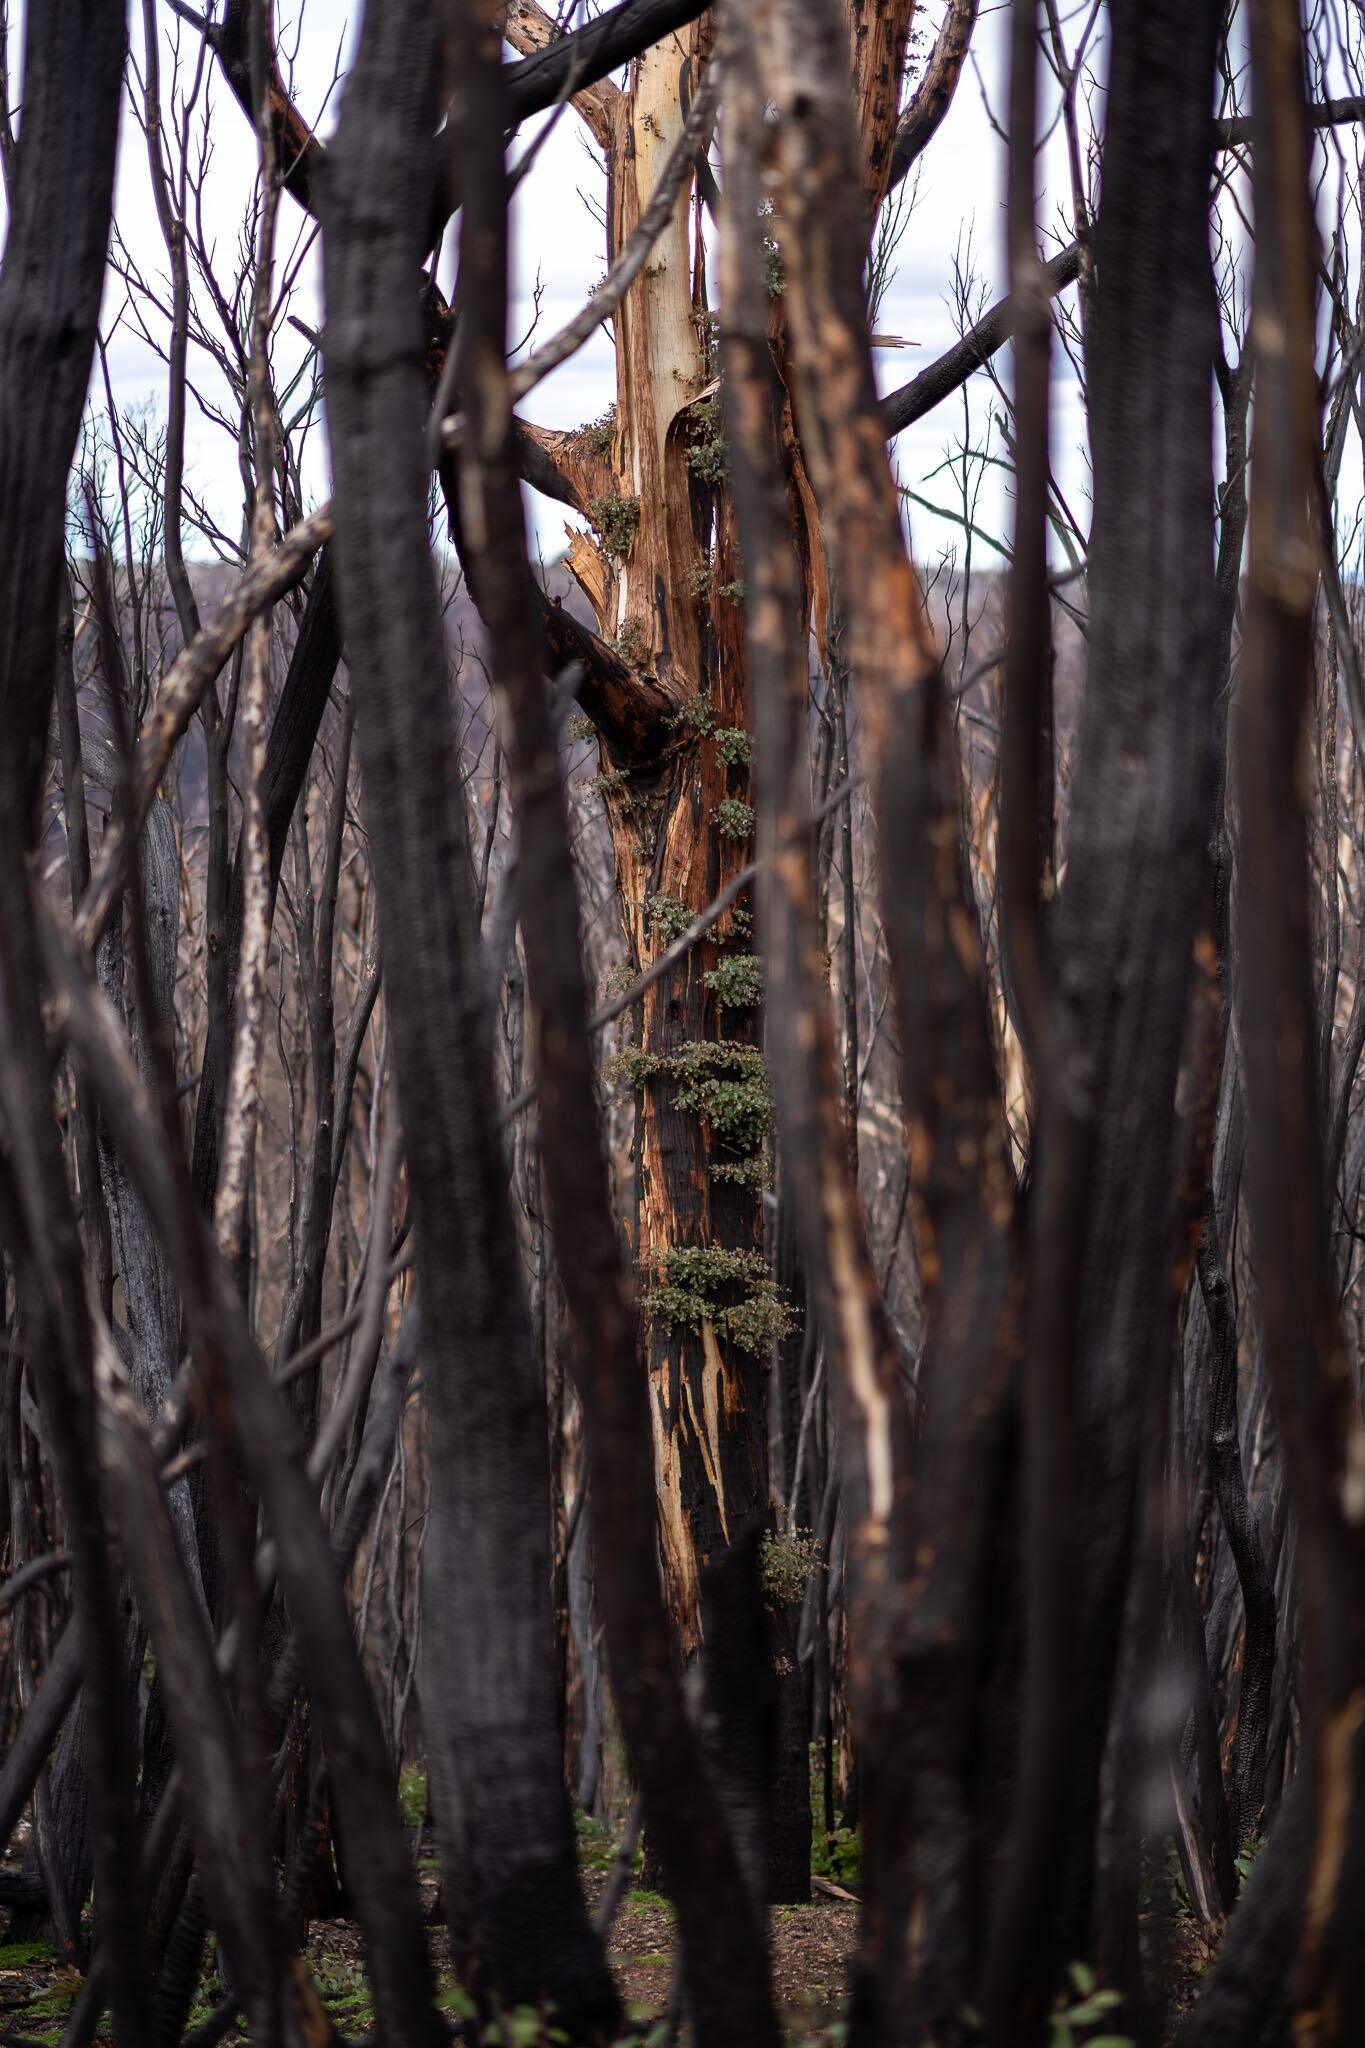 burnt trees in Kosciuszko National Park after the fires, taken during a bikepacking trip